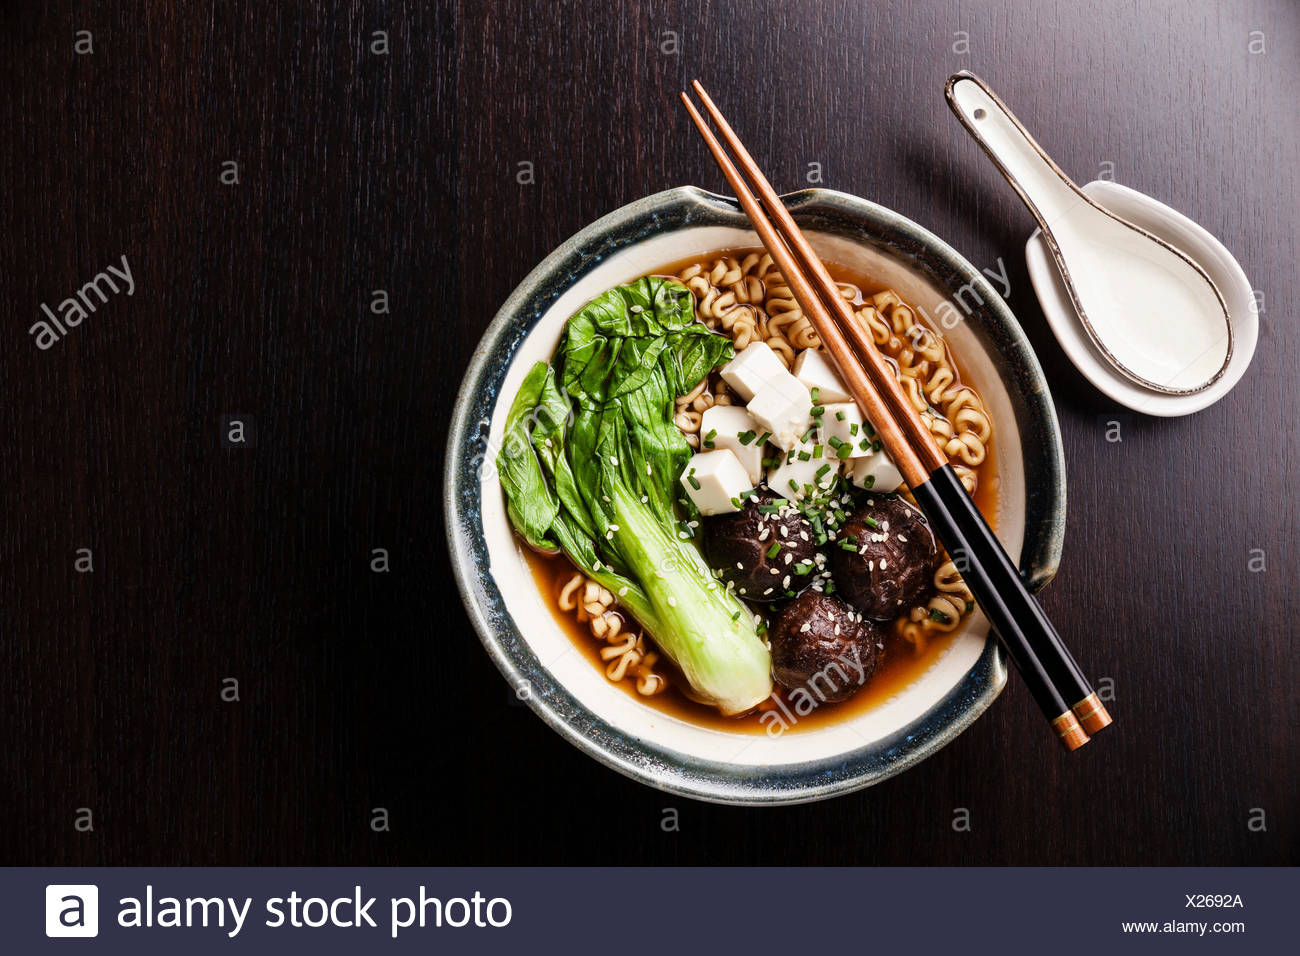 Miso Ramen Asian noodles with shiitake, tofu and pak choi cabbage in bowl on black table background - Stock Image